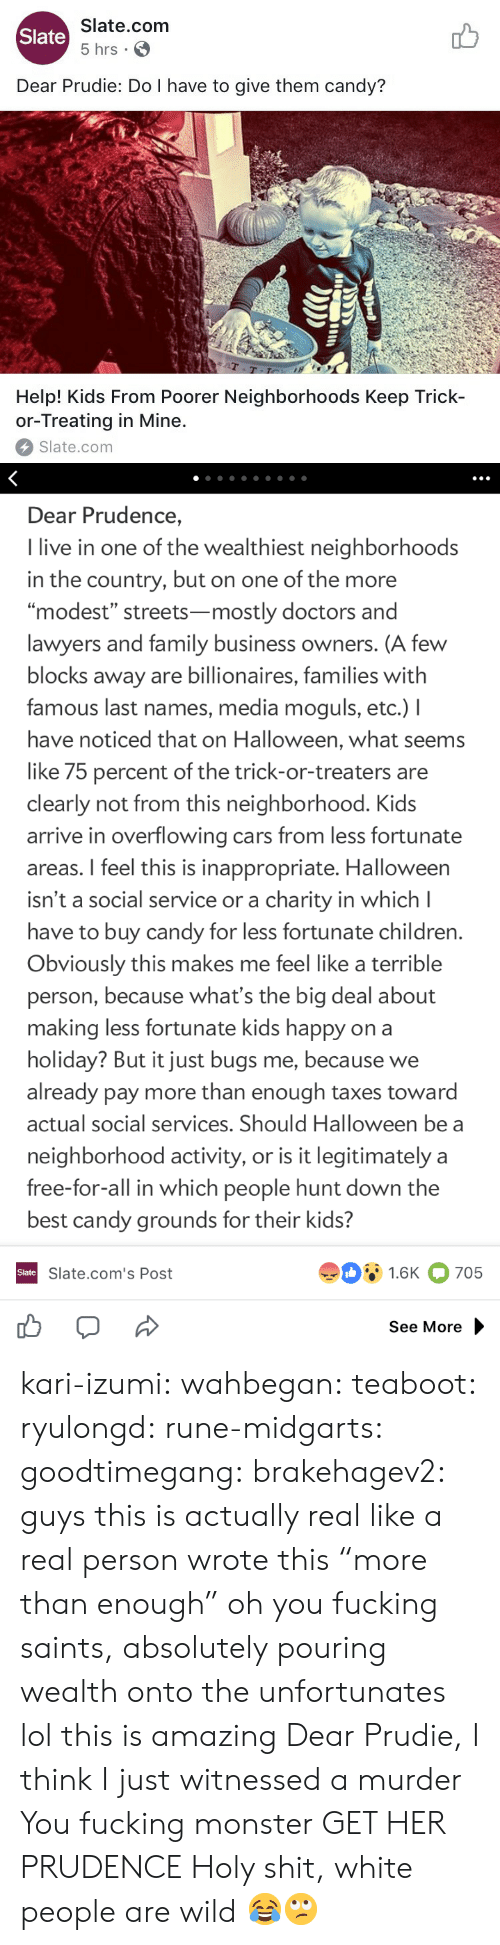 "modest: Slate.com  5 hrs .  Slate  Dear Prudie: Do I have to give them candy?  aT  T-T  Help! Kids From Poorer Neighborhoods Keep Trick-  or-Treating in Mine.  Slate.com   Dear Prudence,  I live in one of the wealthiest neighborhoods  in the country, but on one of the more  ""modest"" streets-mostly doctors and  lawyers and family business owners. (A few  blocks away are billionaires, families with  famous last names, media moguls, etc.) I  have noticed that on Halloween, what seems  like 75 percent of the trick-or-treaters are  clearly not from this neighborhood. Kids  arrive in overflowing cars from less fortunate  areas. I feel this is inappropriate. Halloween  isn't a social service or a charity in which l  have to buy candy for less fortunate children  Obviously this makes me feel like a terrible  person, because what's the big deal about  making less fortunate kids happy on a  holiday? But it just bugs me, because we  already pay more than enough taxes toward  actual social services. Should Halloween be a  neighborhood activity, or is it legitimately a  free-for-all in which people hunt down the  best candy grounds for their kids?  91.6K 705  Slate  Slate.com's Post  See More kari-izumi: wahbegan:  teaboot:  ryulongd:  rune-midgarts:  goodtimegang:  brakehagev2:  guys this is actually real like a real person wrote this  ""more than enough"" oh you fucking saints, absolutely pouring wealth onto the unfortunates   lol this is amazing   Dear Prudie, I think I just witnessed a murder  You fucking monster  GET HER PRUDENCE   Holy shit, white people are wild 😂🙄"